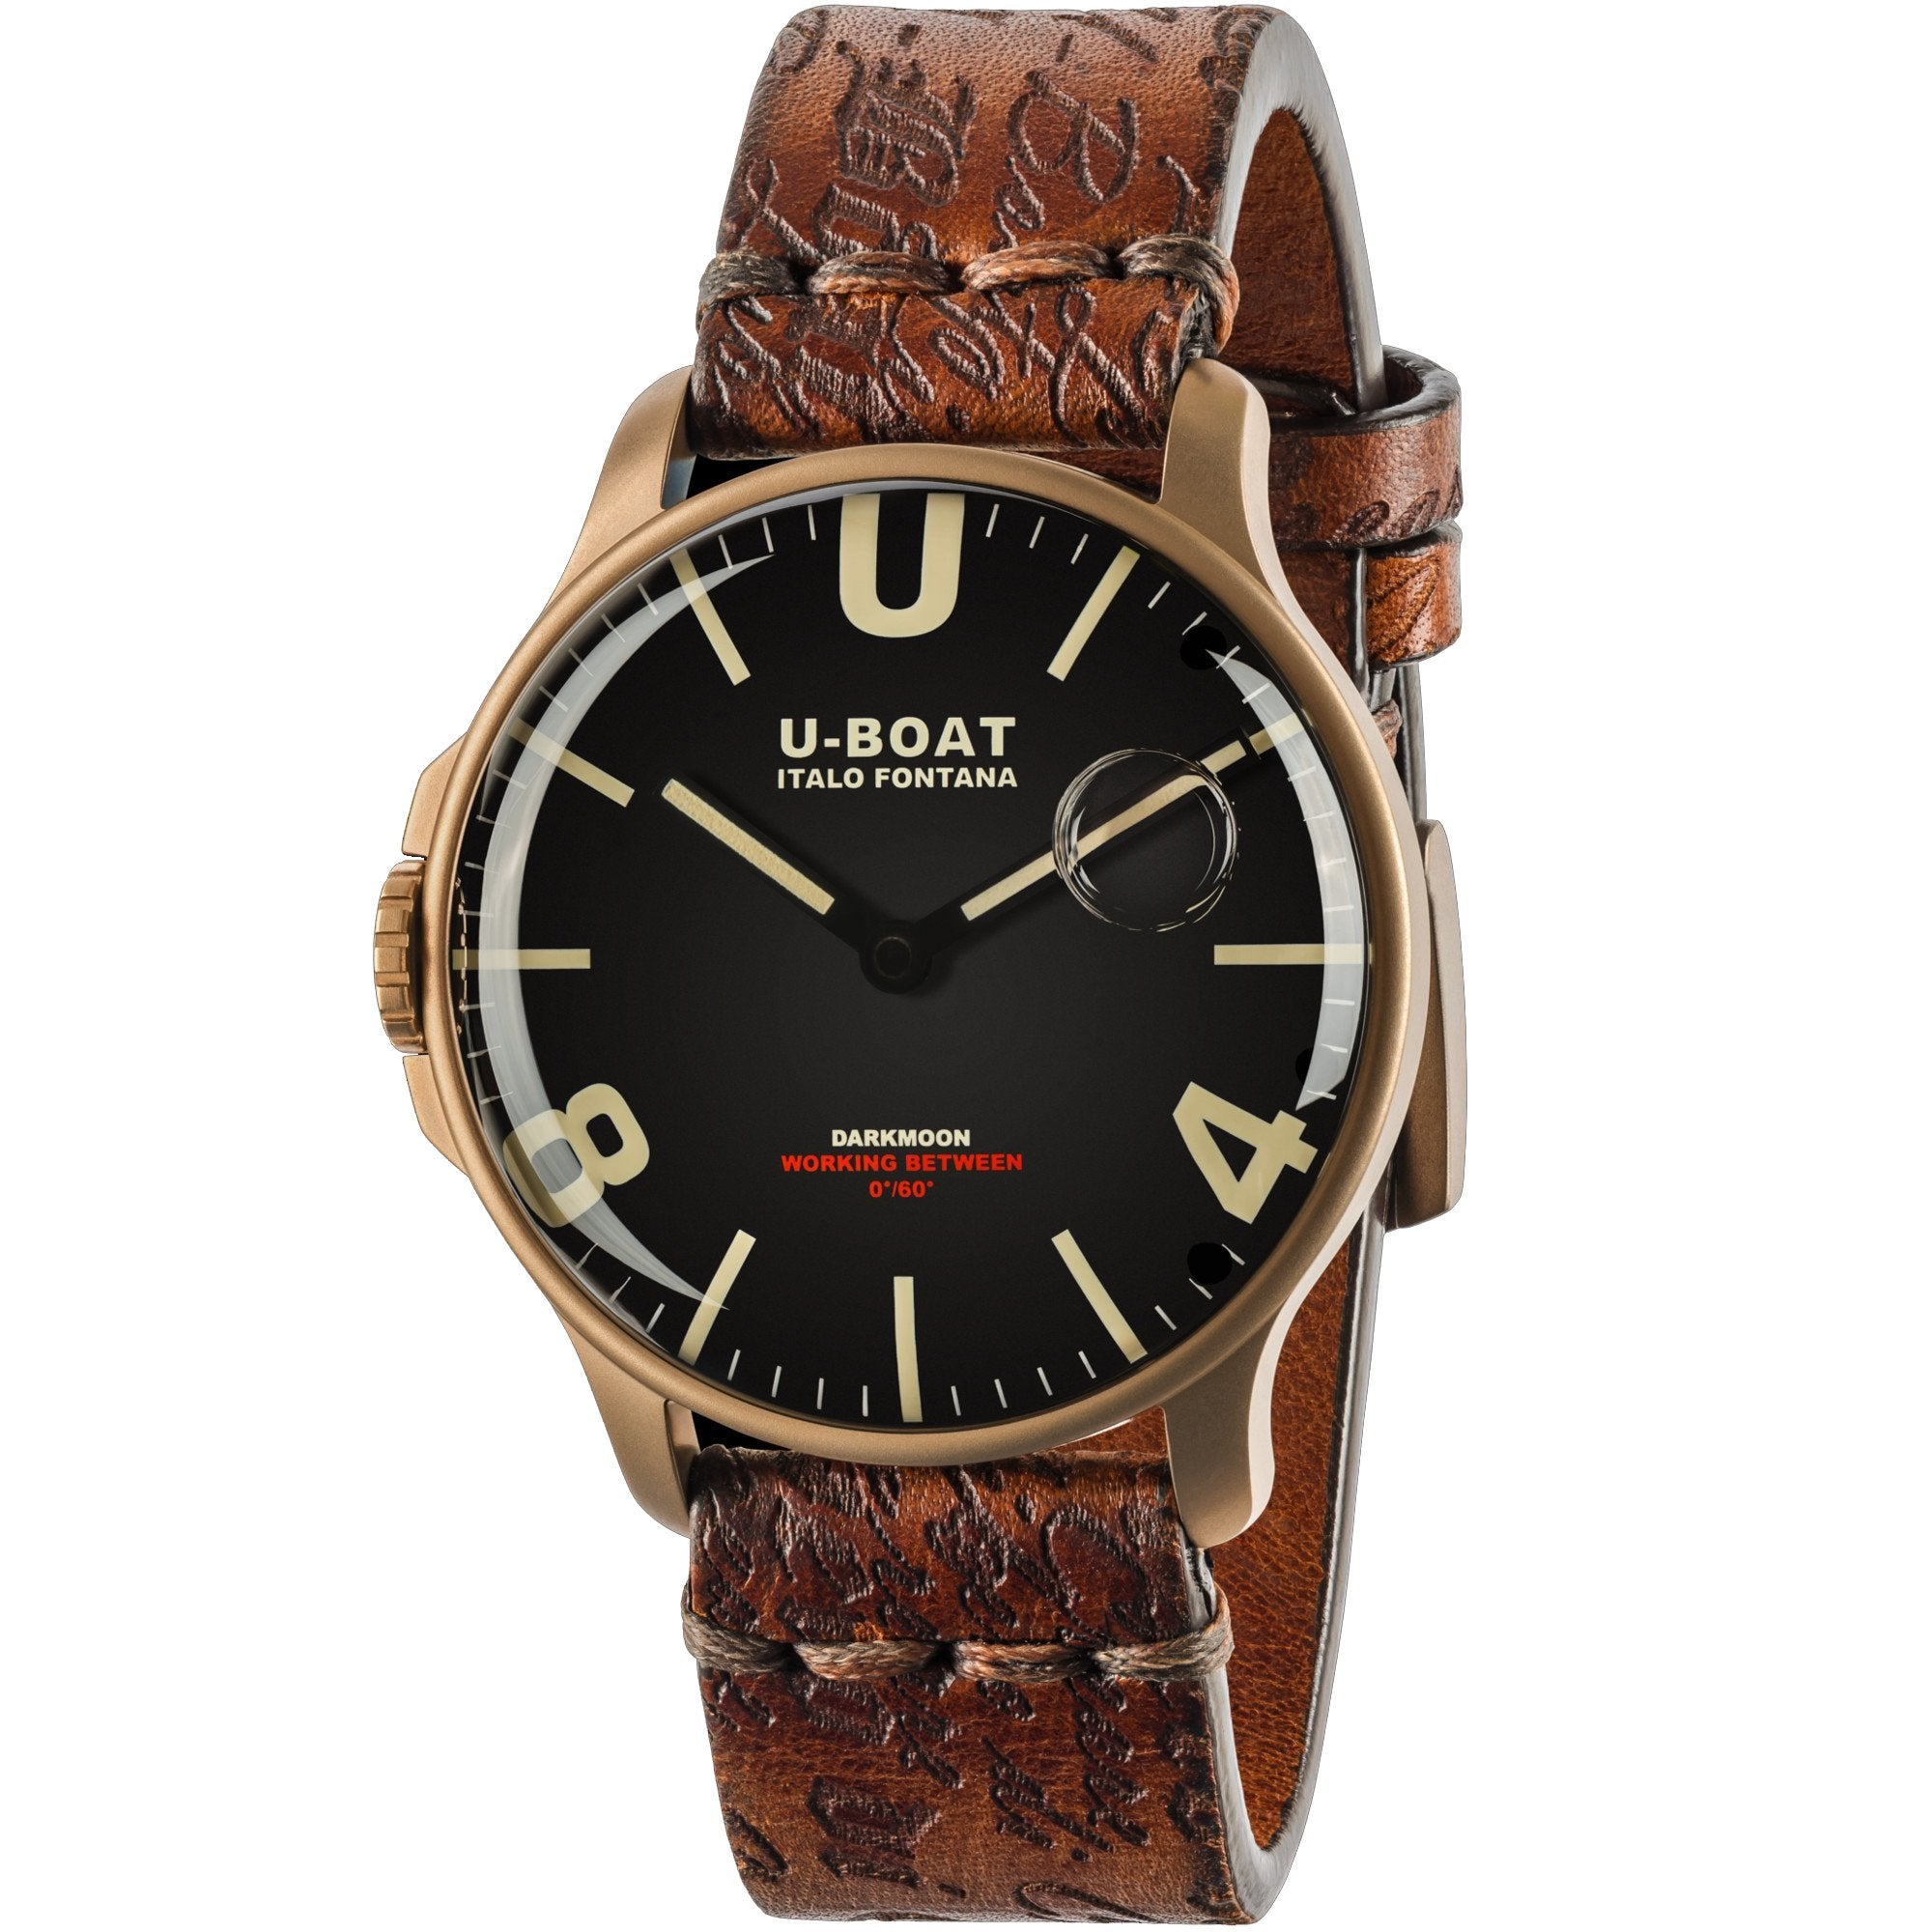 U-Boat Darkmoon 44 IP Bronze - Watches & Crystals